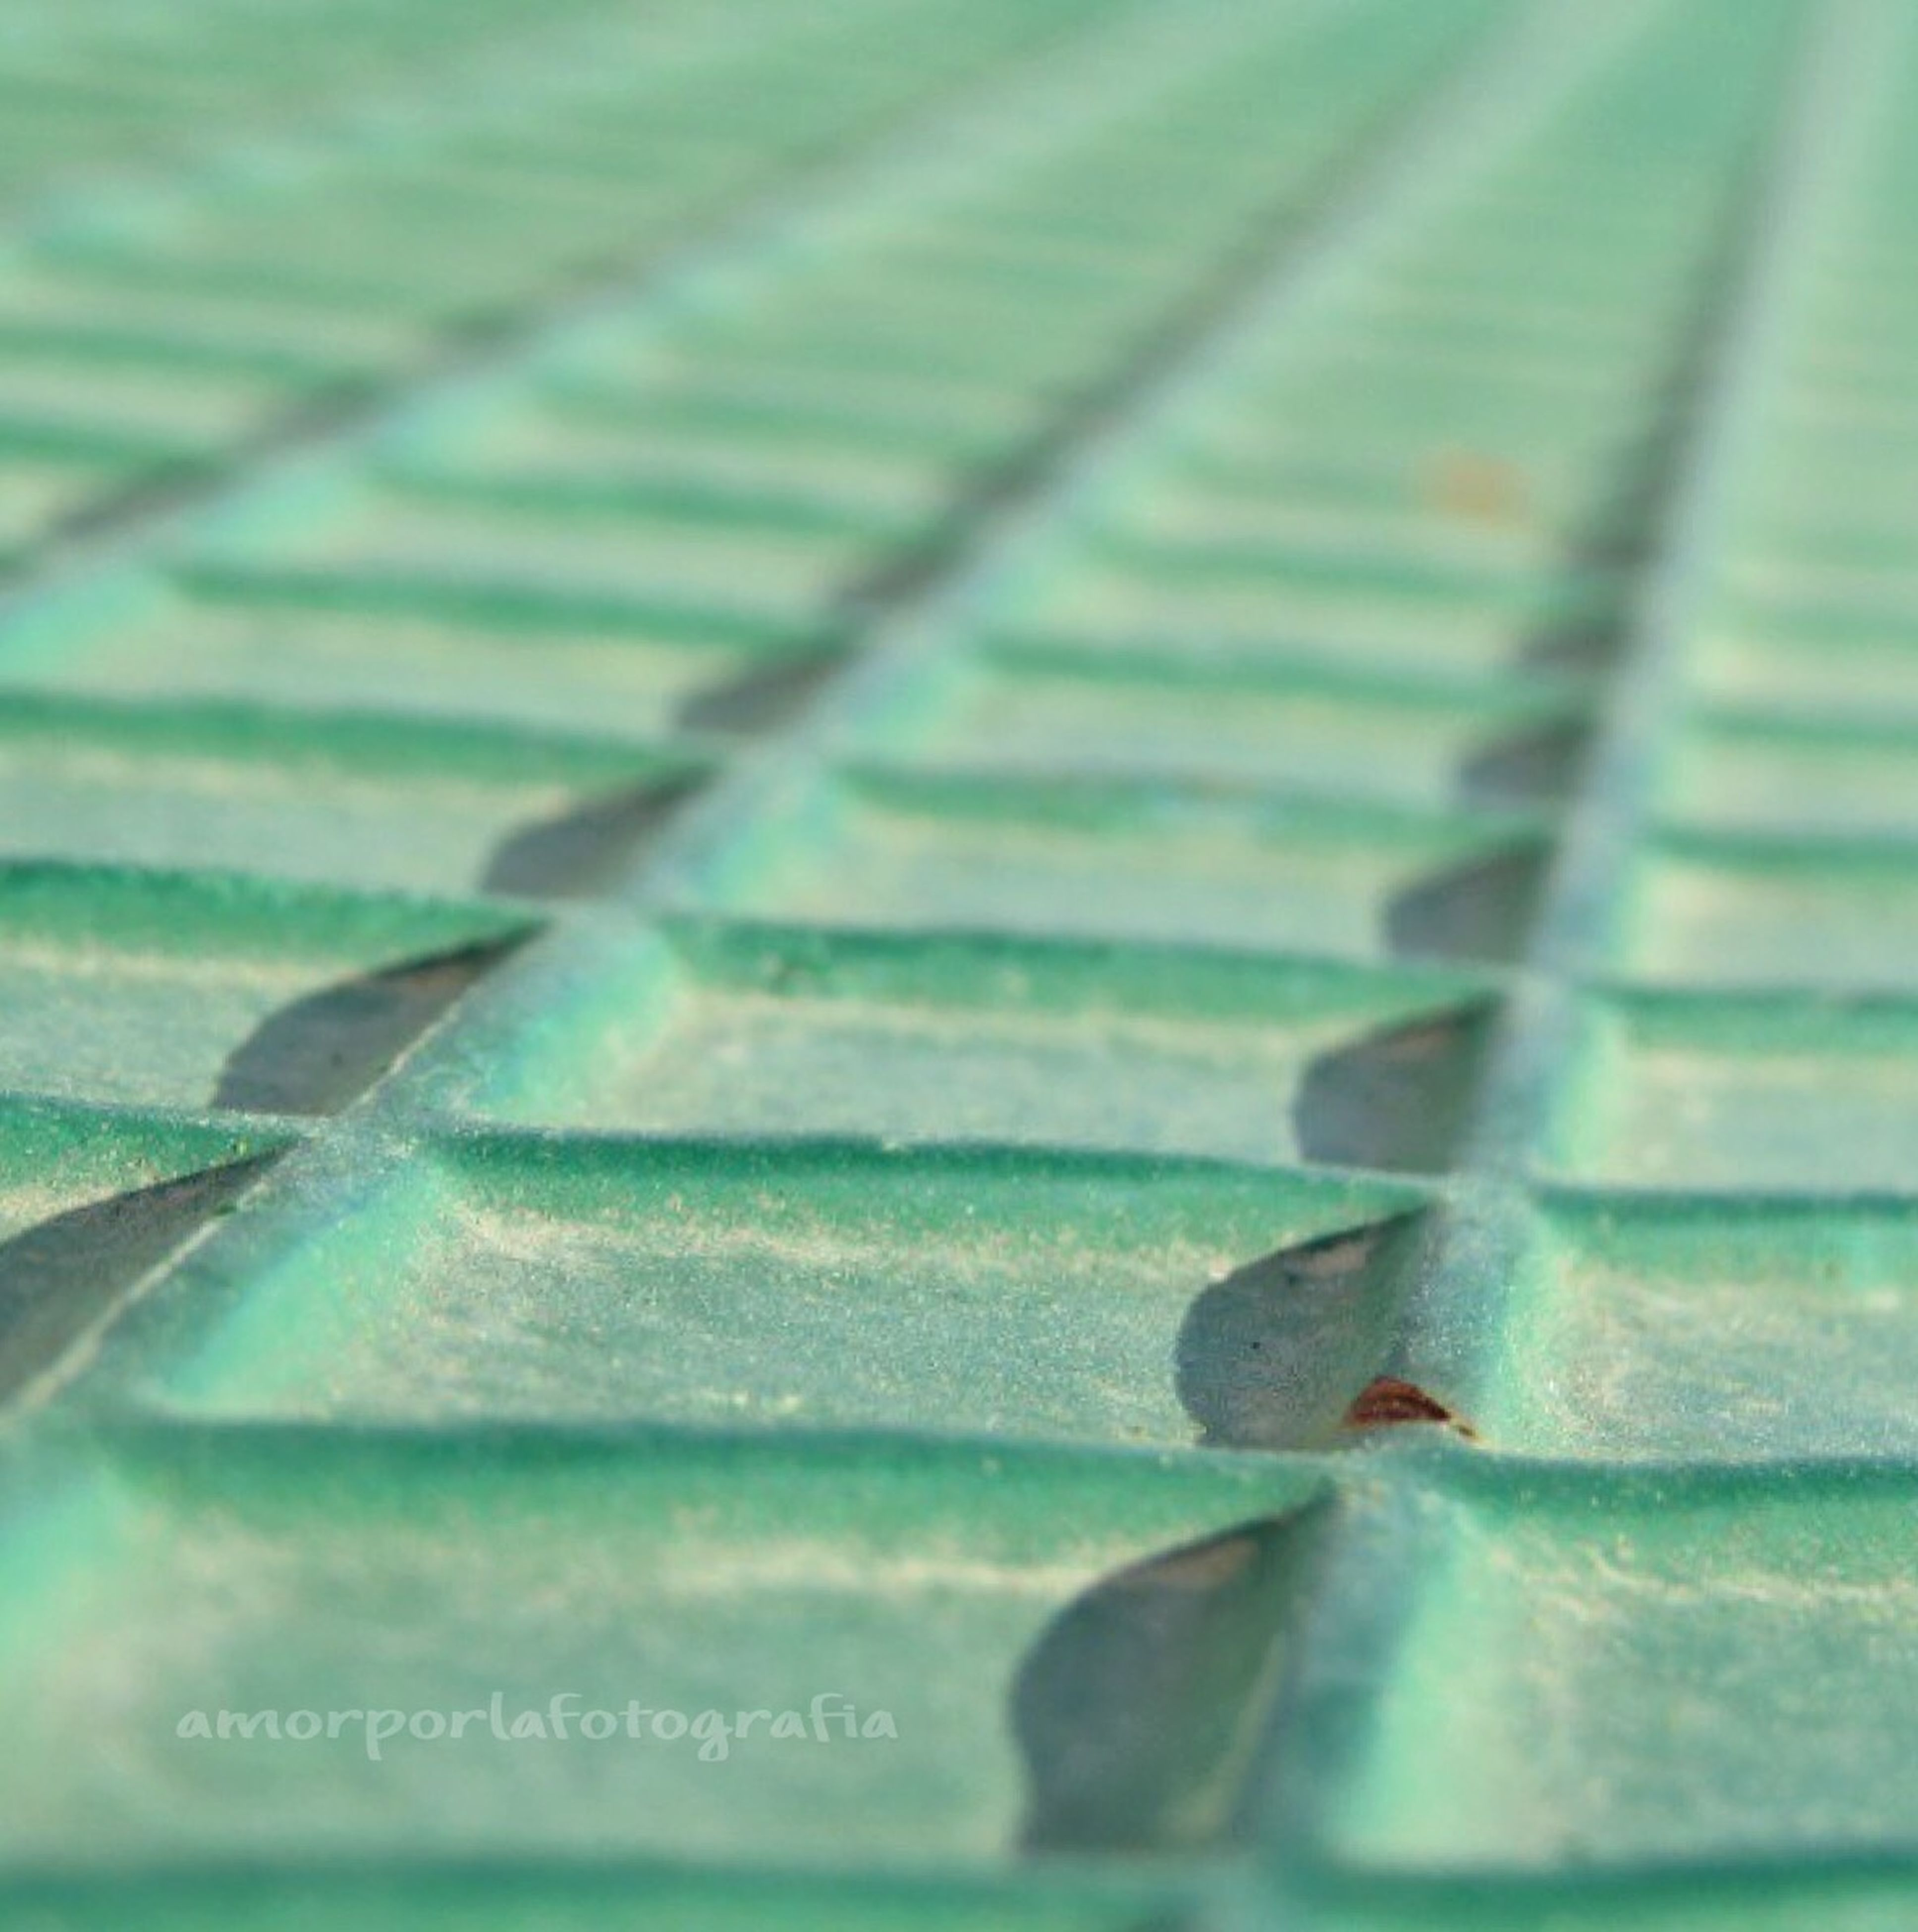 close-up, selective focus, green color, metal, focus on foreground, textured, wood - material, metallic, detail, no people, rusty, old, day, outdoors, pattern, full frame, backgrounds, part of, high angle view, weathered